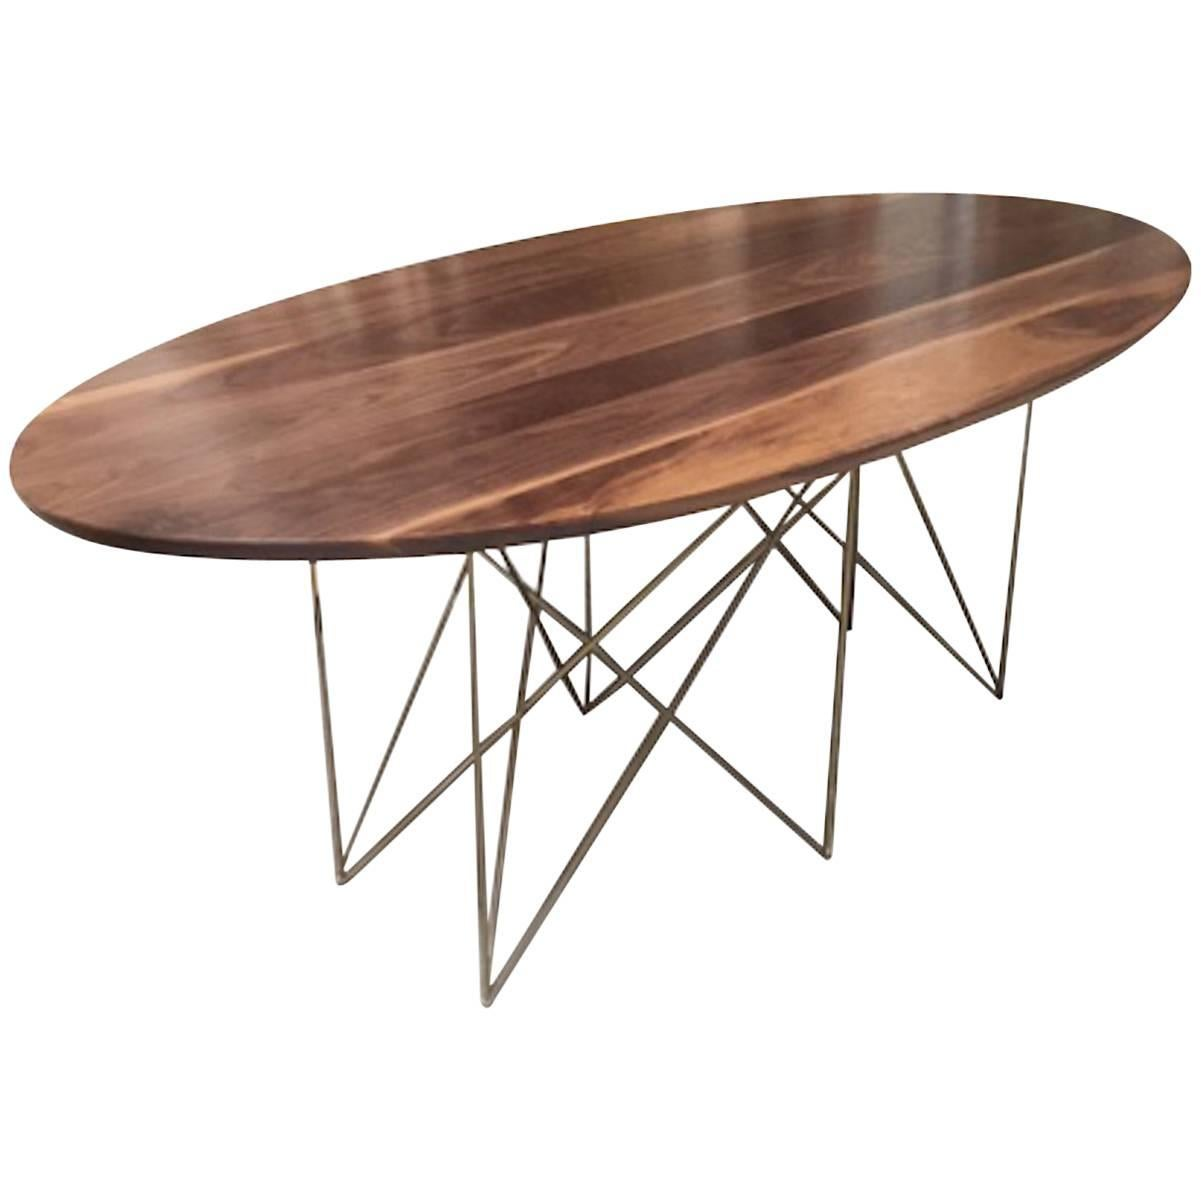 Oval Walnut Dining Conference Midcentury Inspired Steel Powder Coated Table